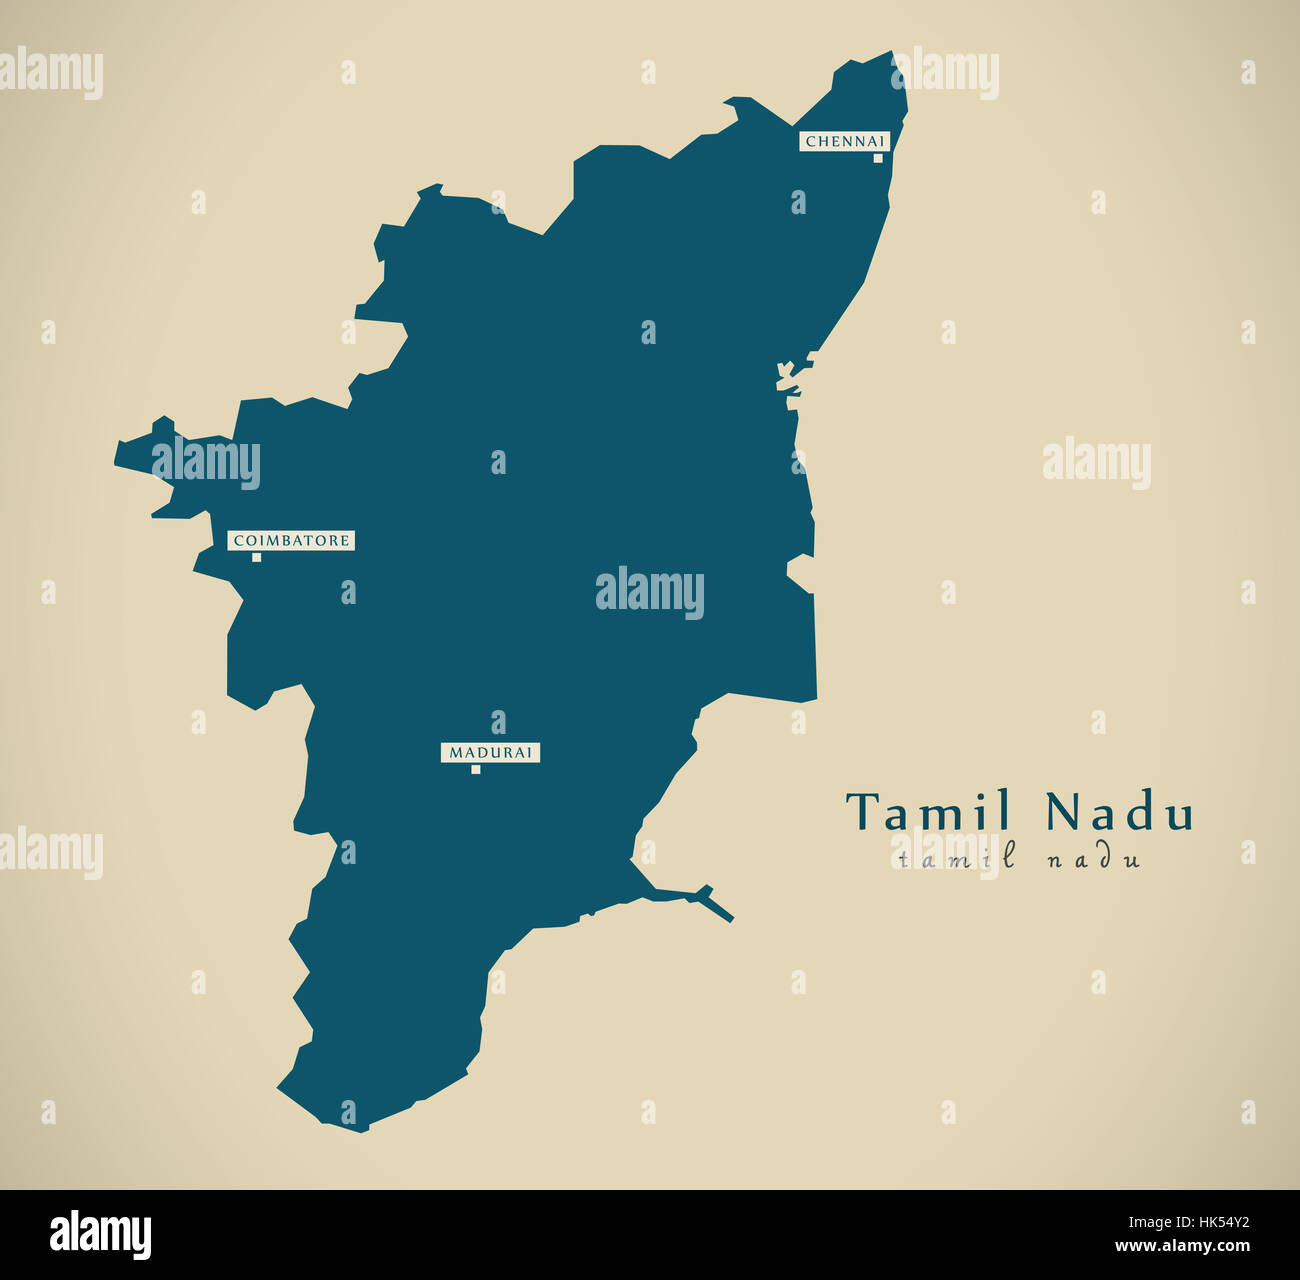 Modern map tamil nadu in india federal state illustration stock modern map tamil nadu in india federal state illustration silhouette gumiabroncs Choice Image